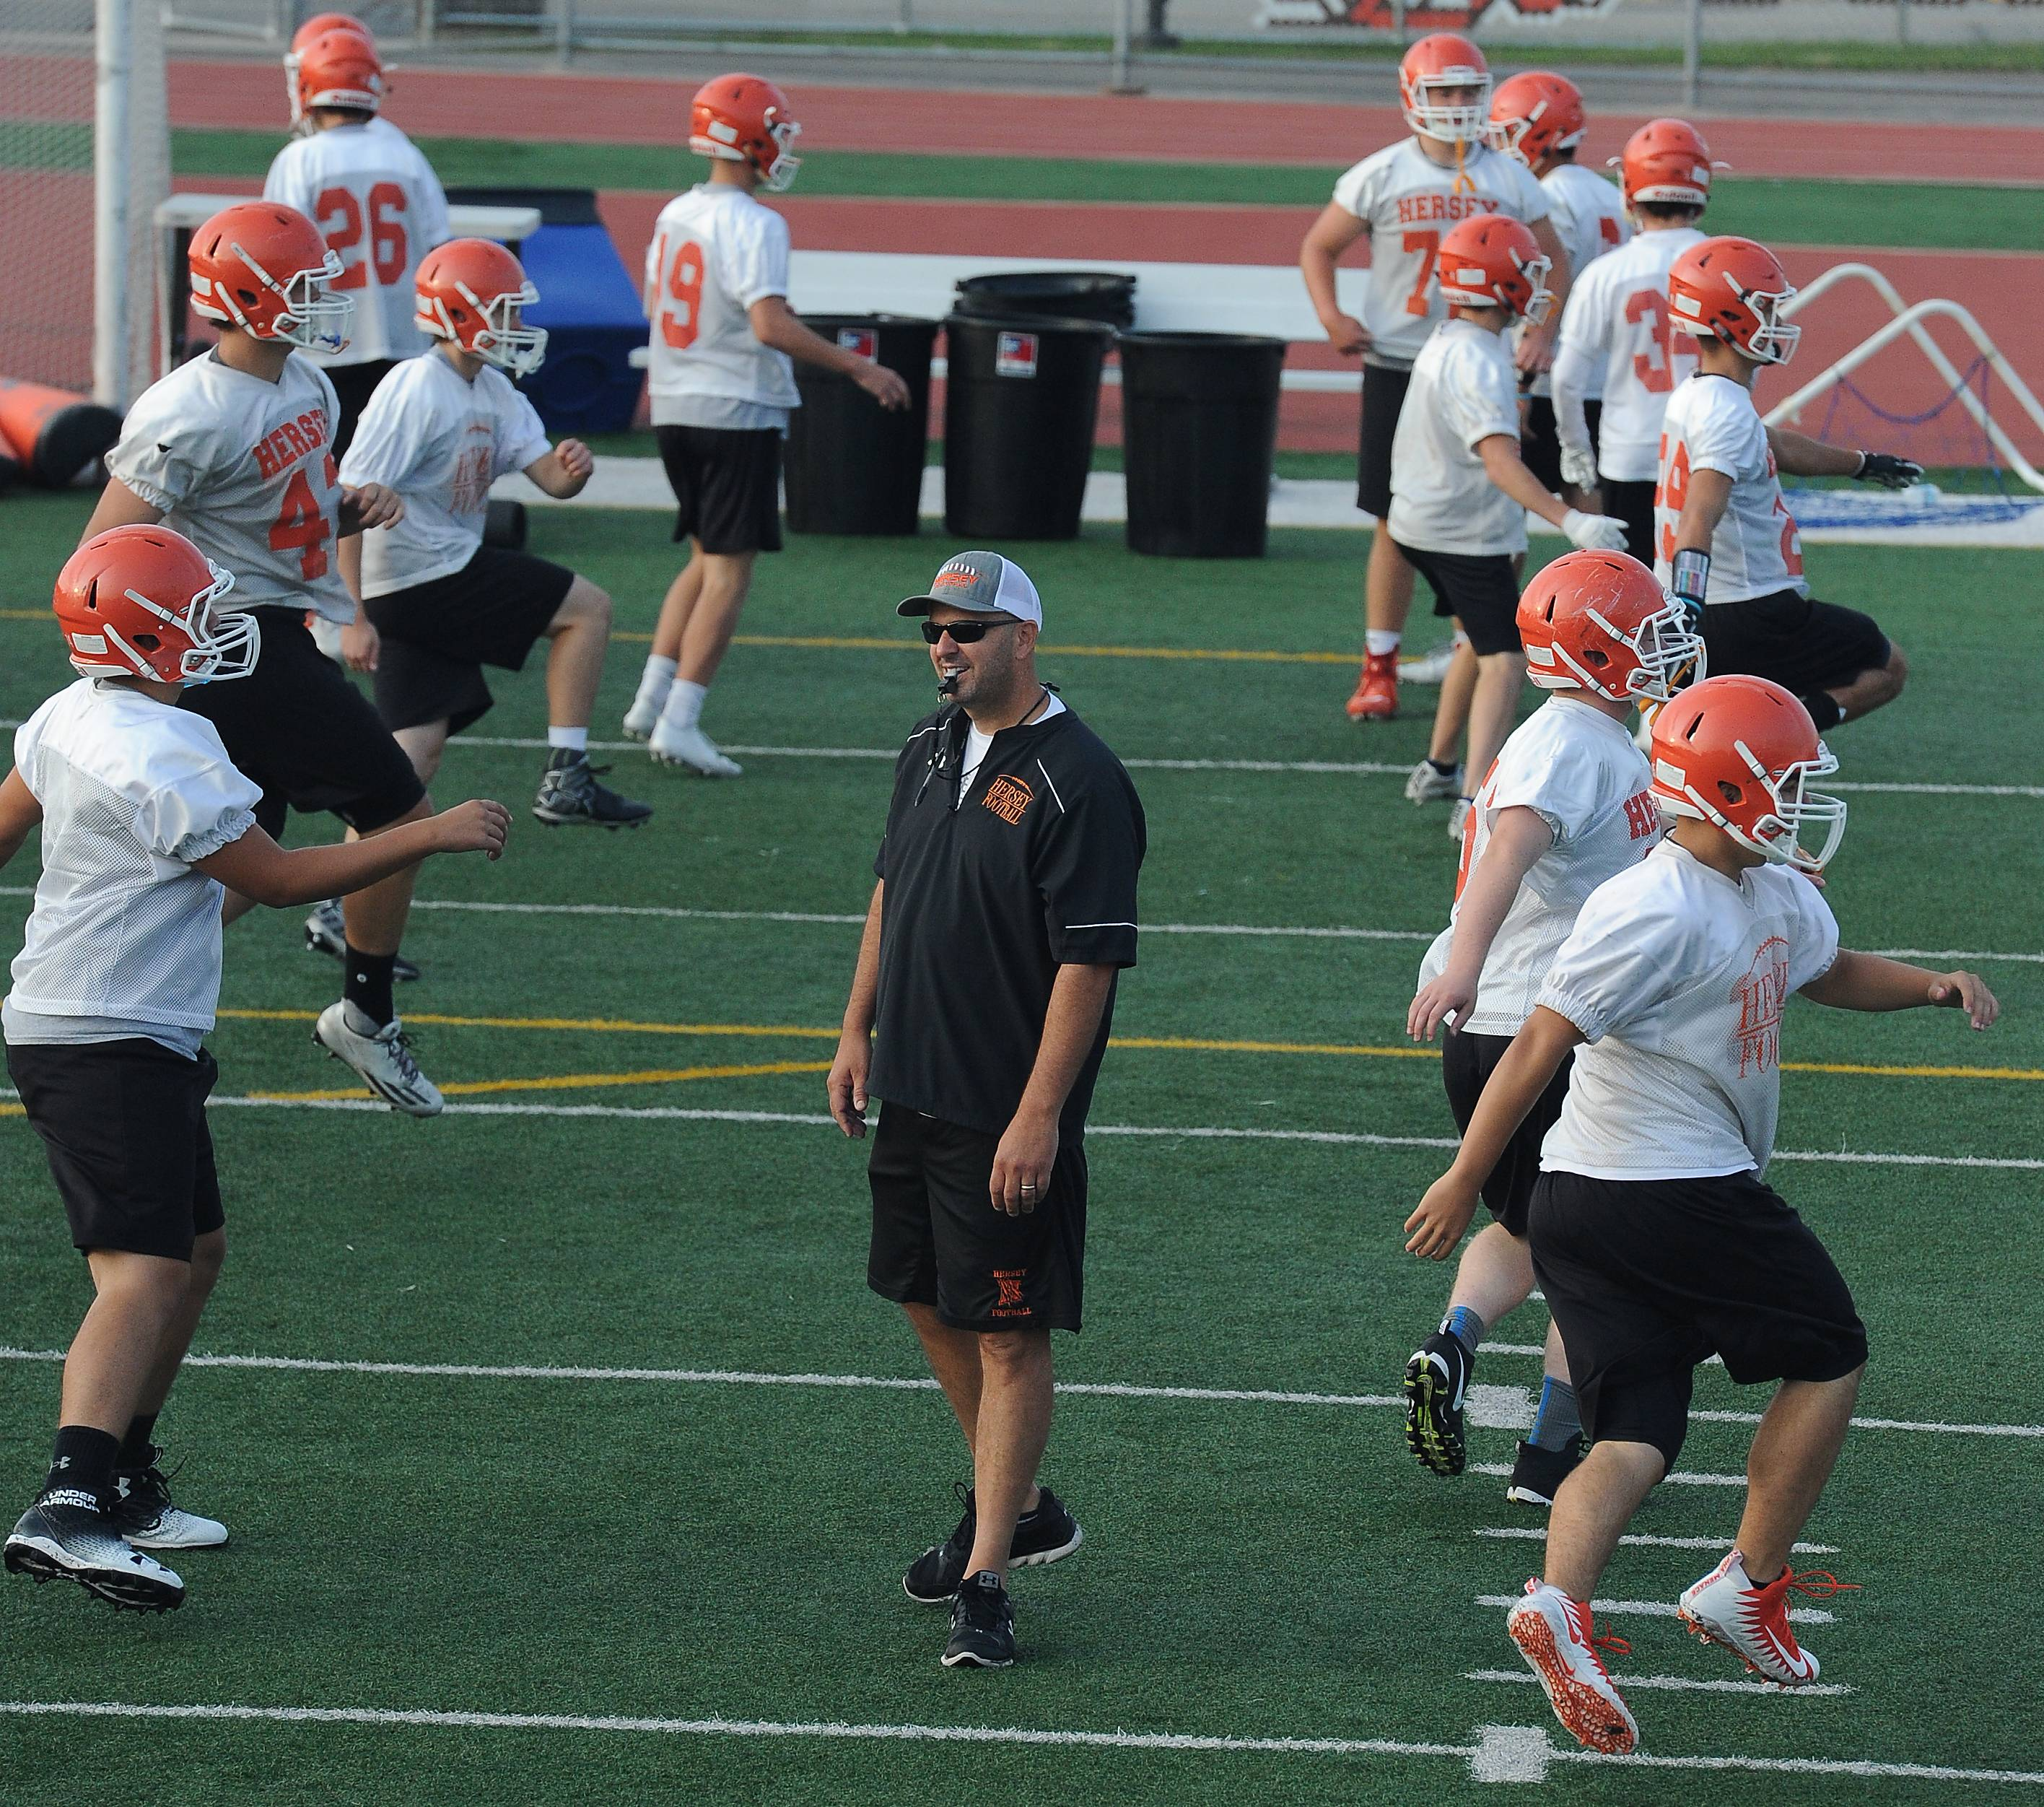 Hersey football head coach Joe Pardun with his players in the early morning workout session Monday.